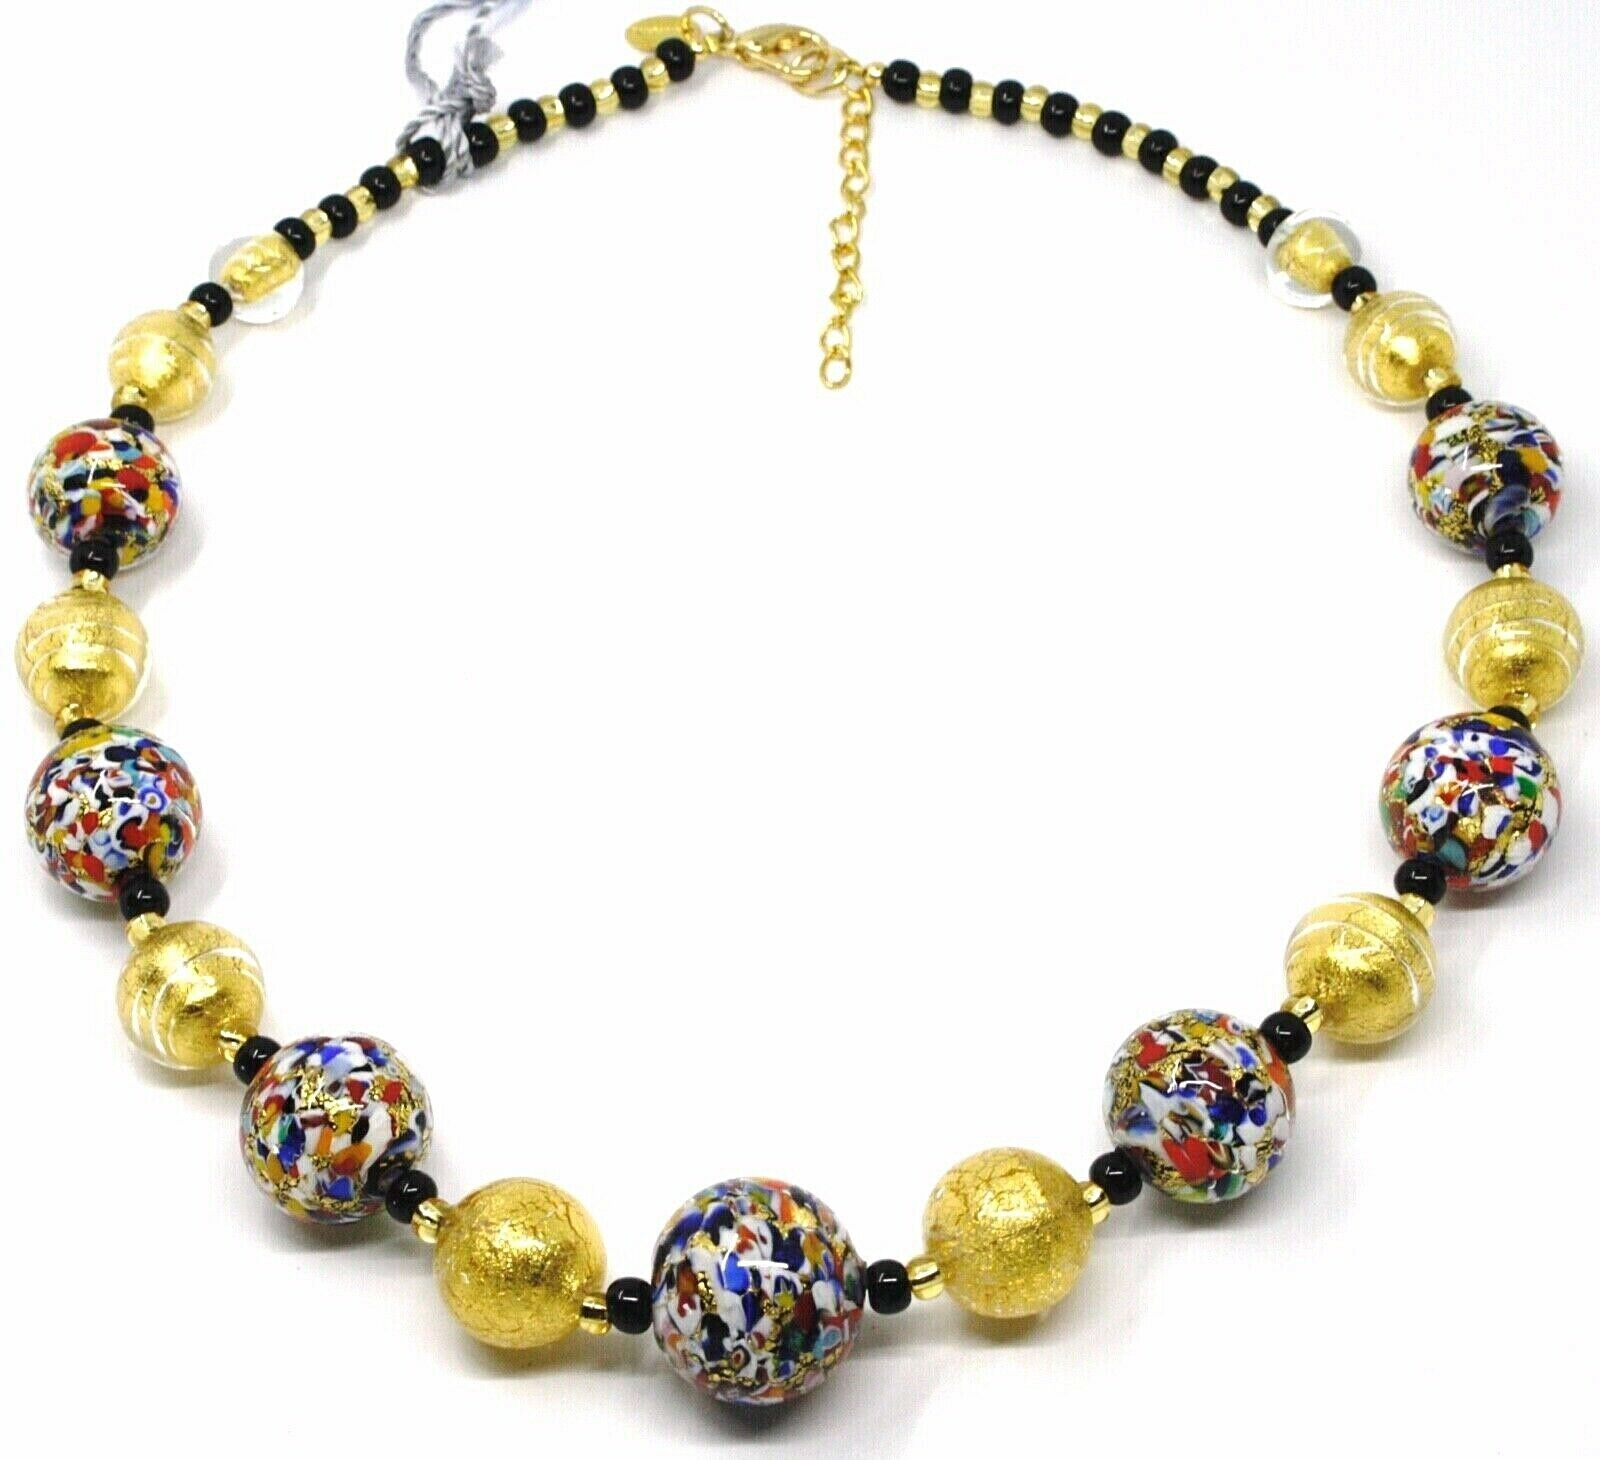 NECKLACE MACULATE MULTI COLOR MURANO GLASS BIG SPHERES, GOLD LEAF, ITALY MADE